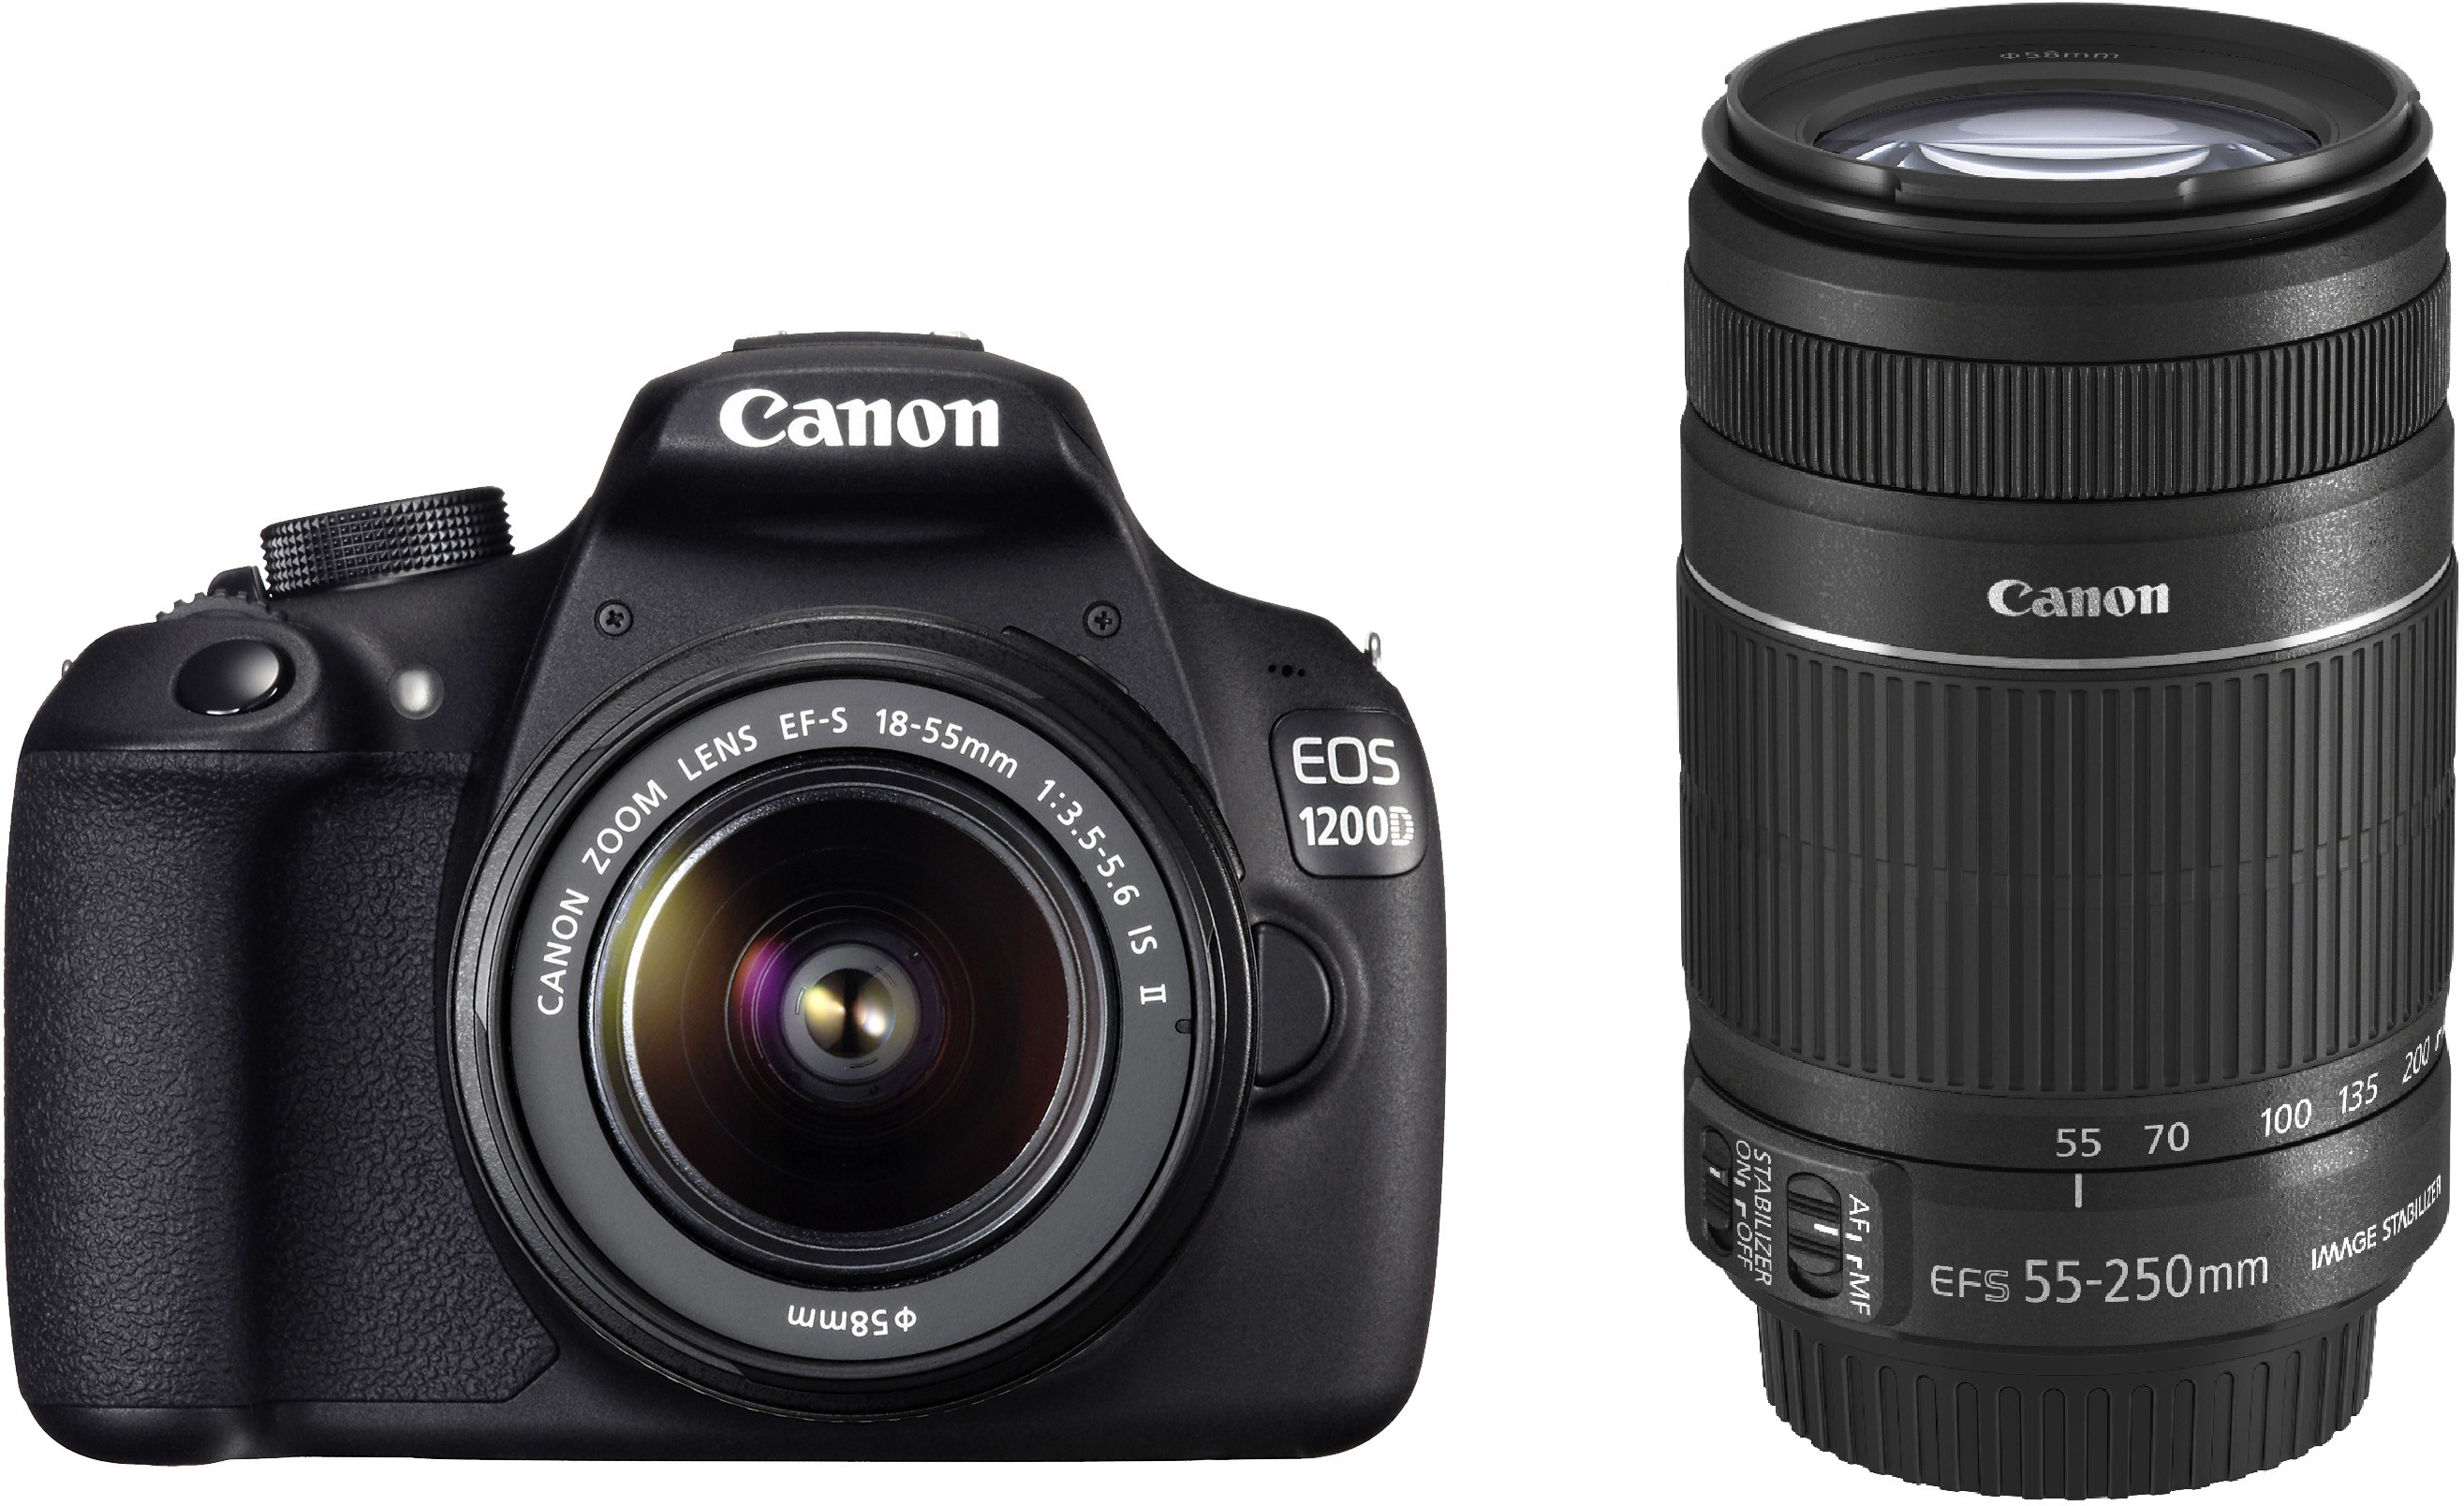 Canon EOS 1200D DSLR Camera Price In India 24 Apr 2018